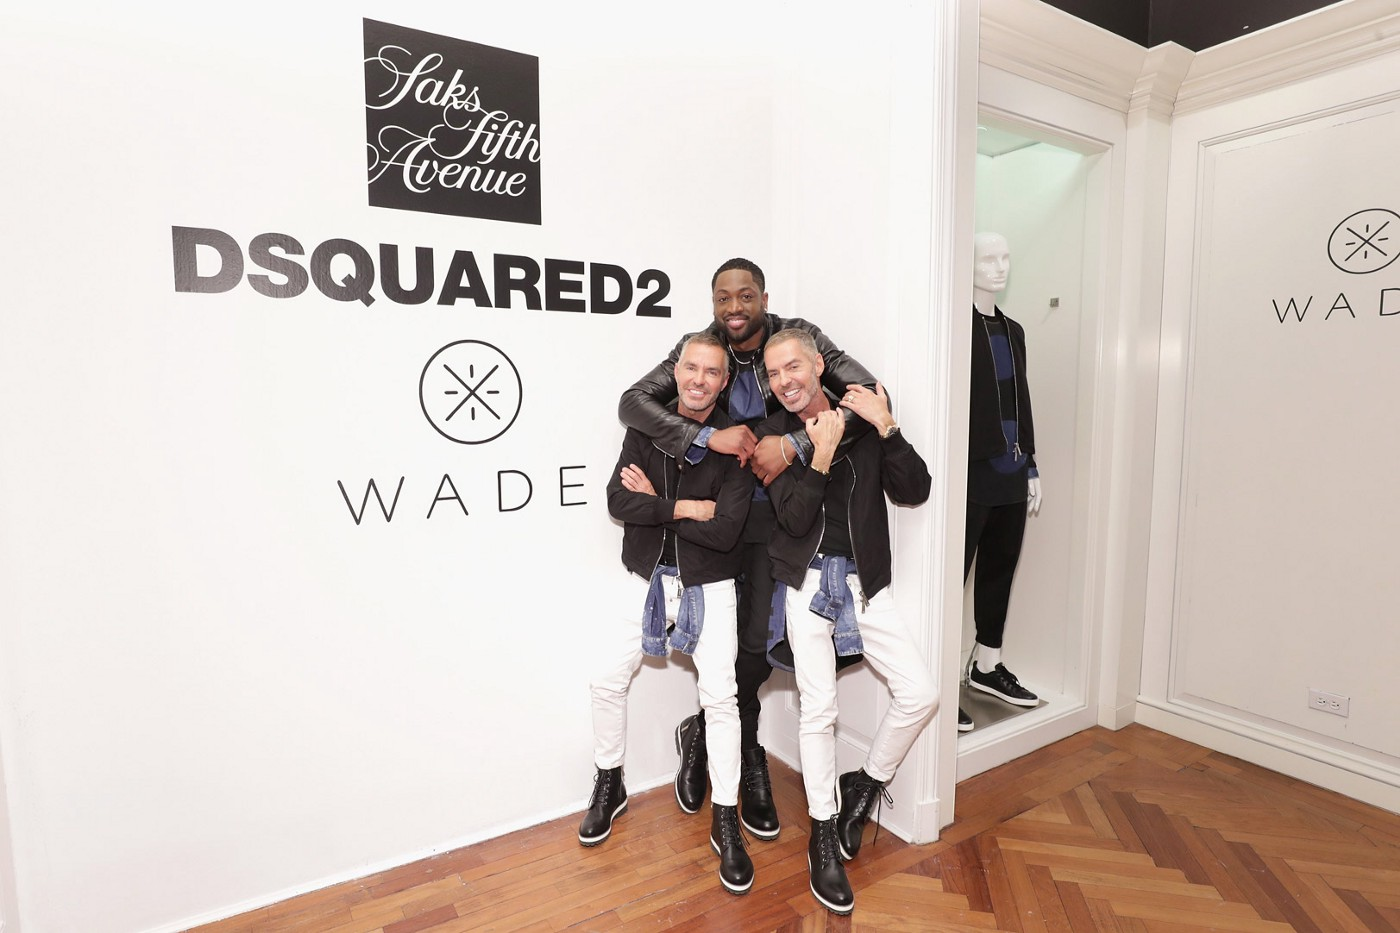 DSquared2 Way of Wade Lifestyle